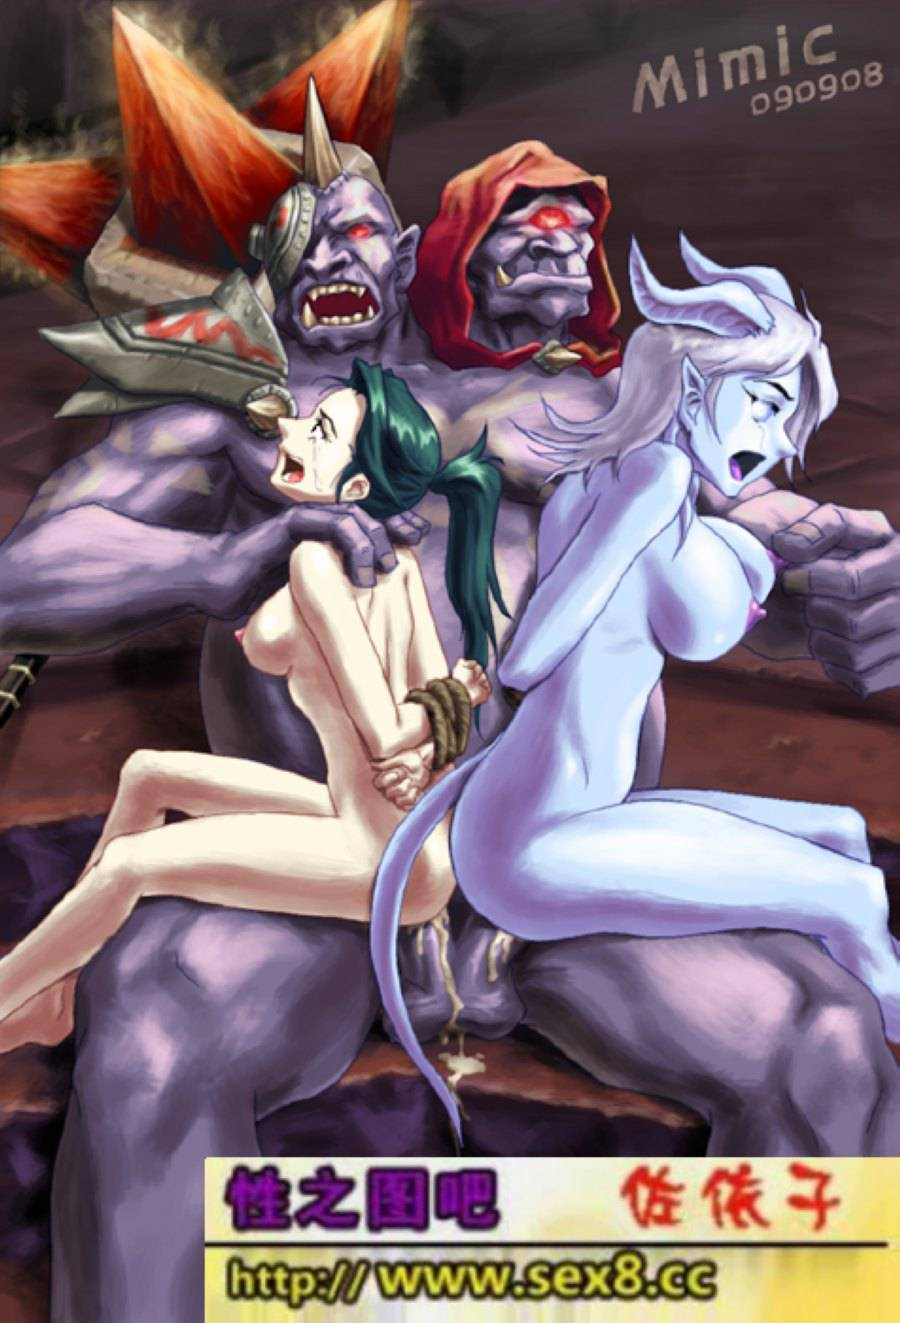 Naked cartoon and sex monster high adult images